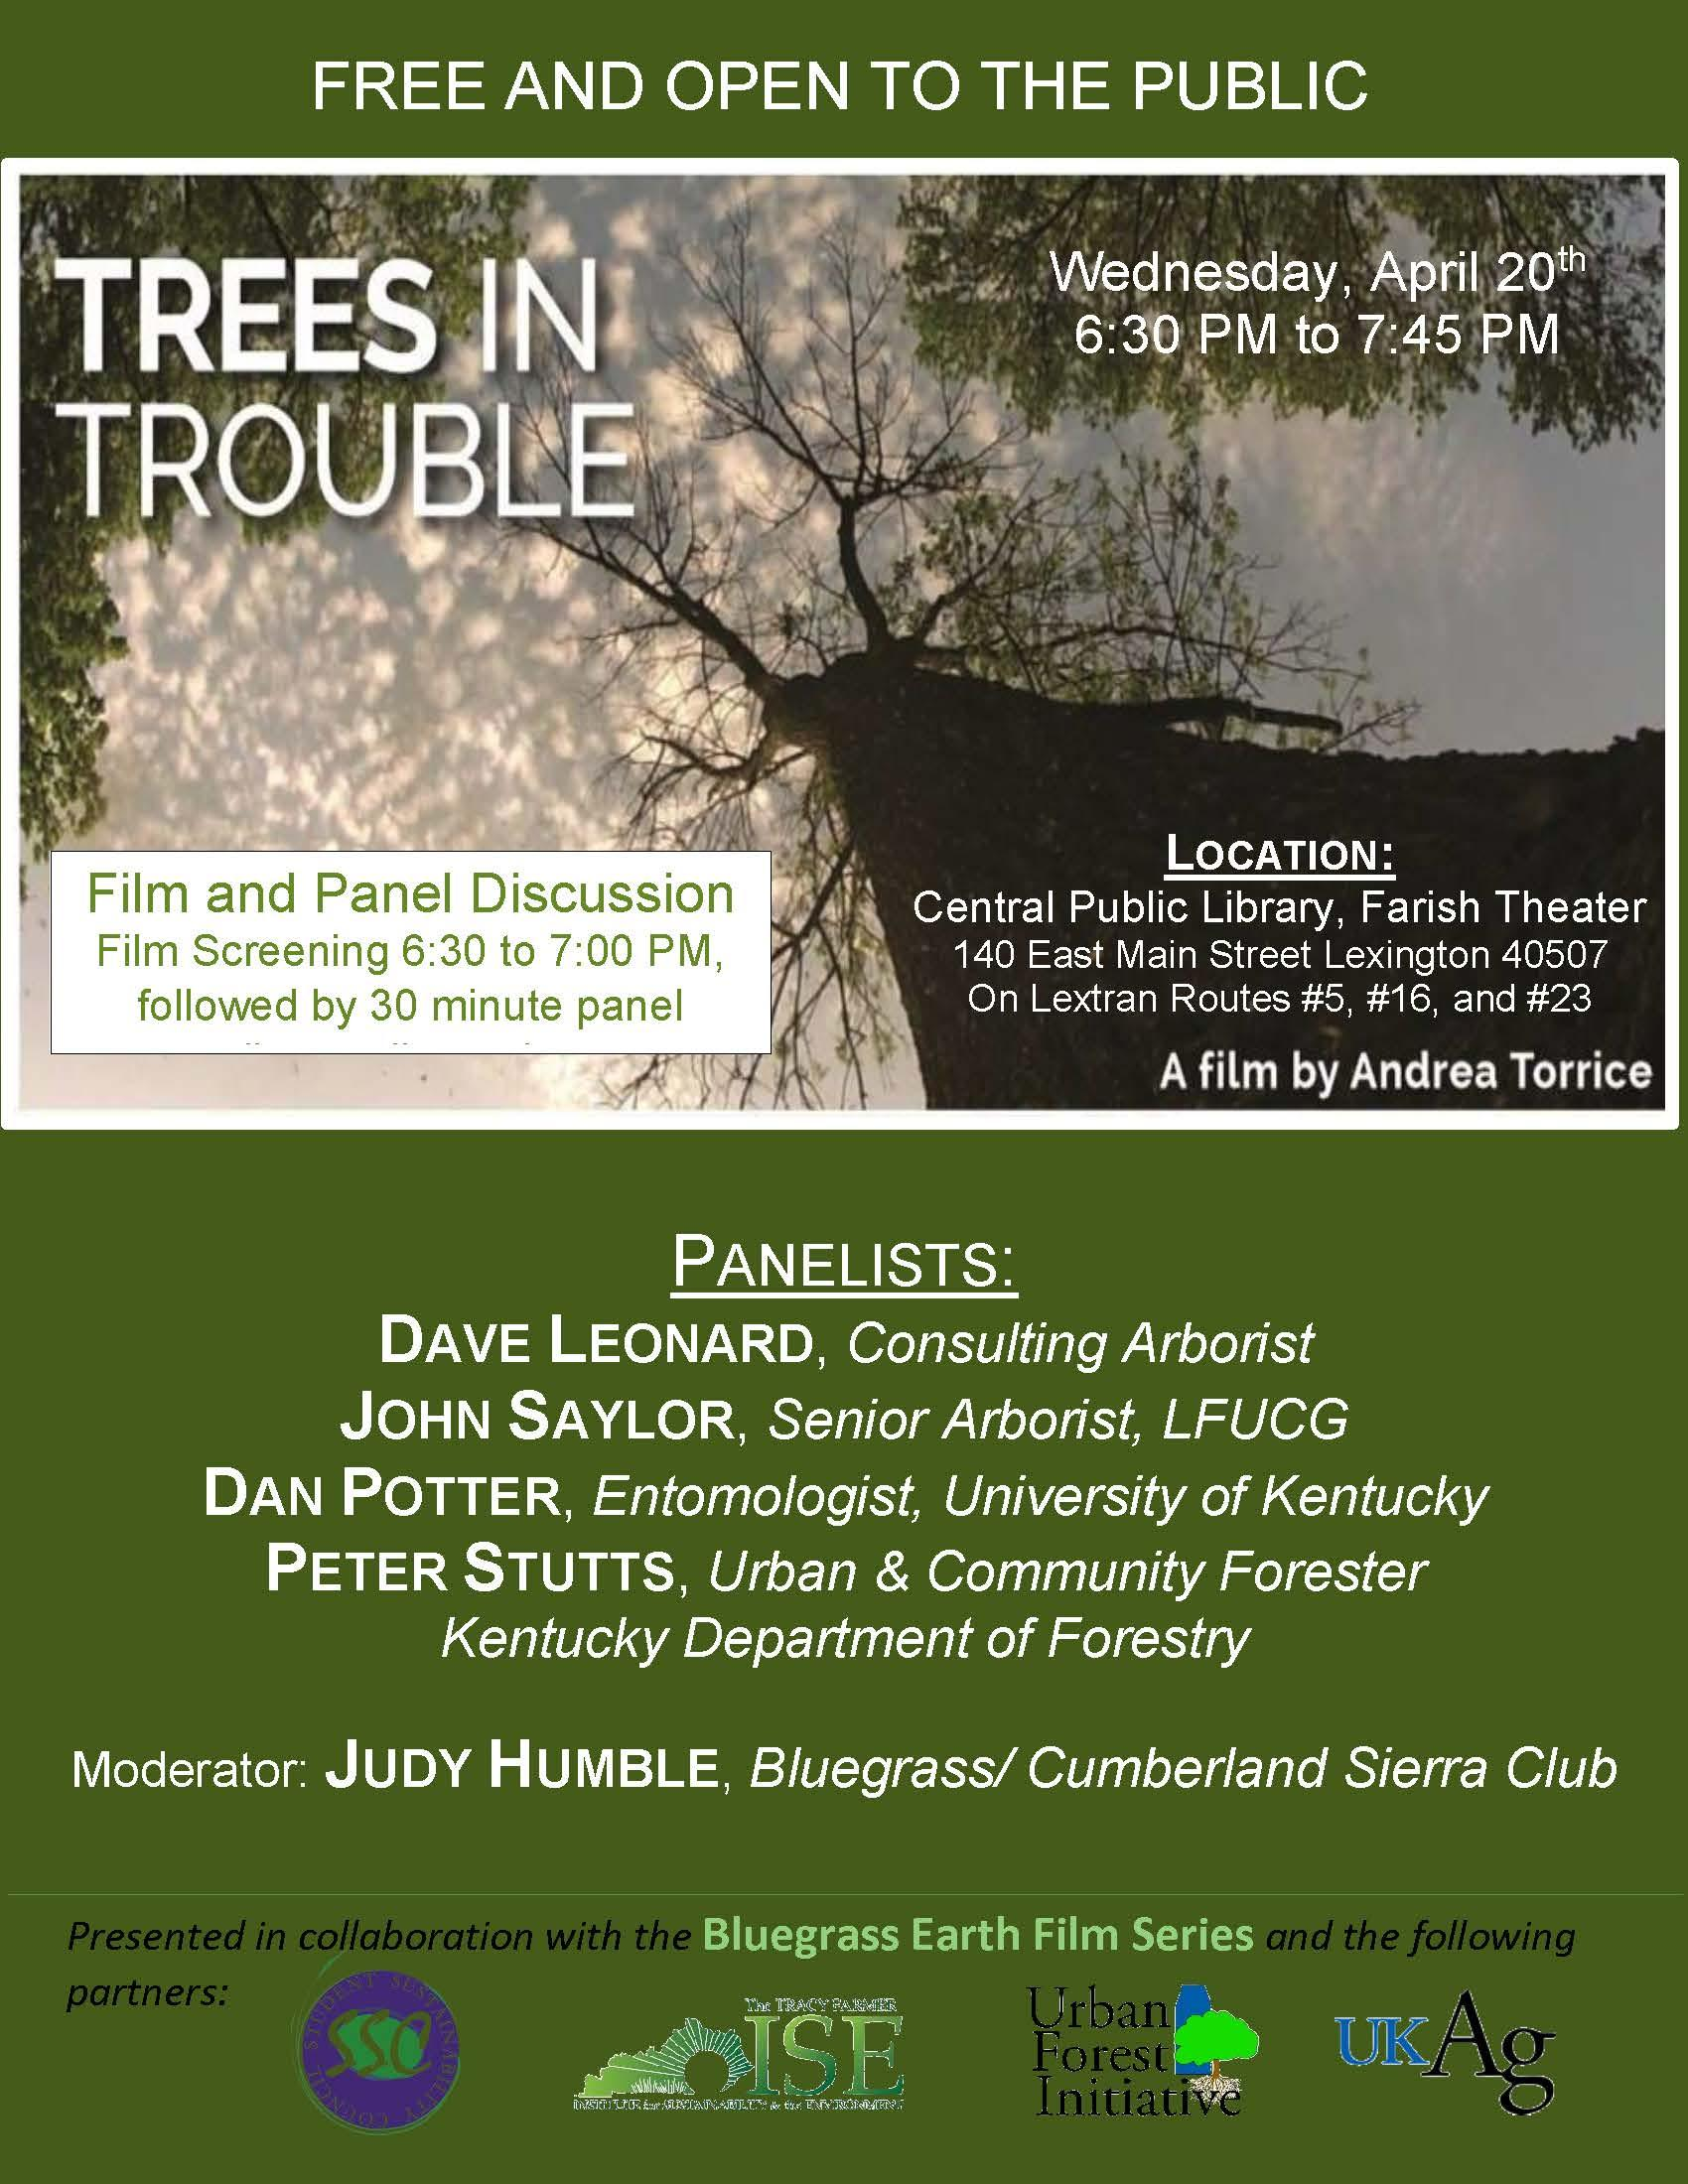 Flyer for film showing Trees in Trouble